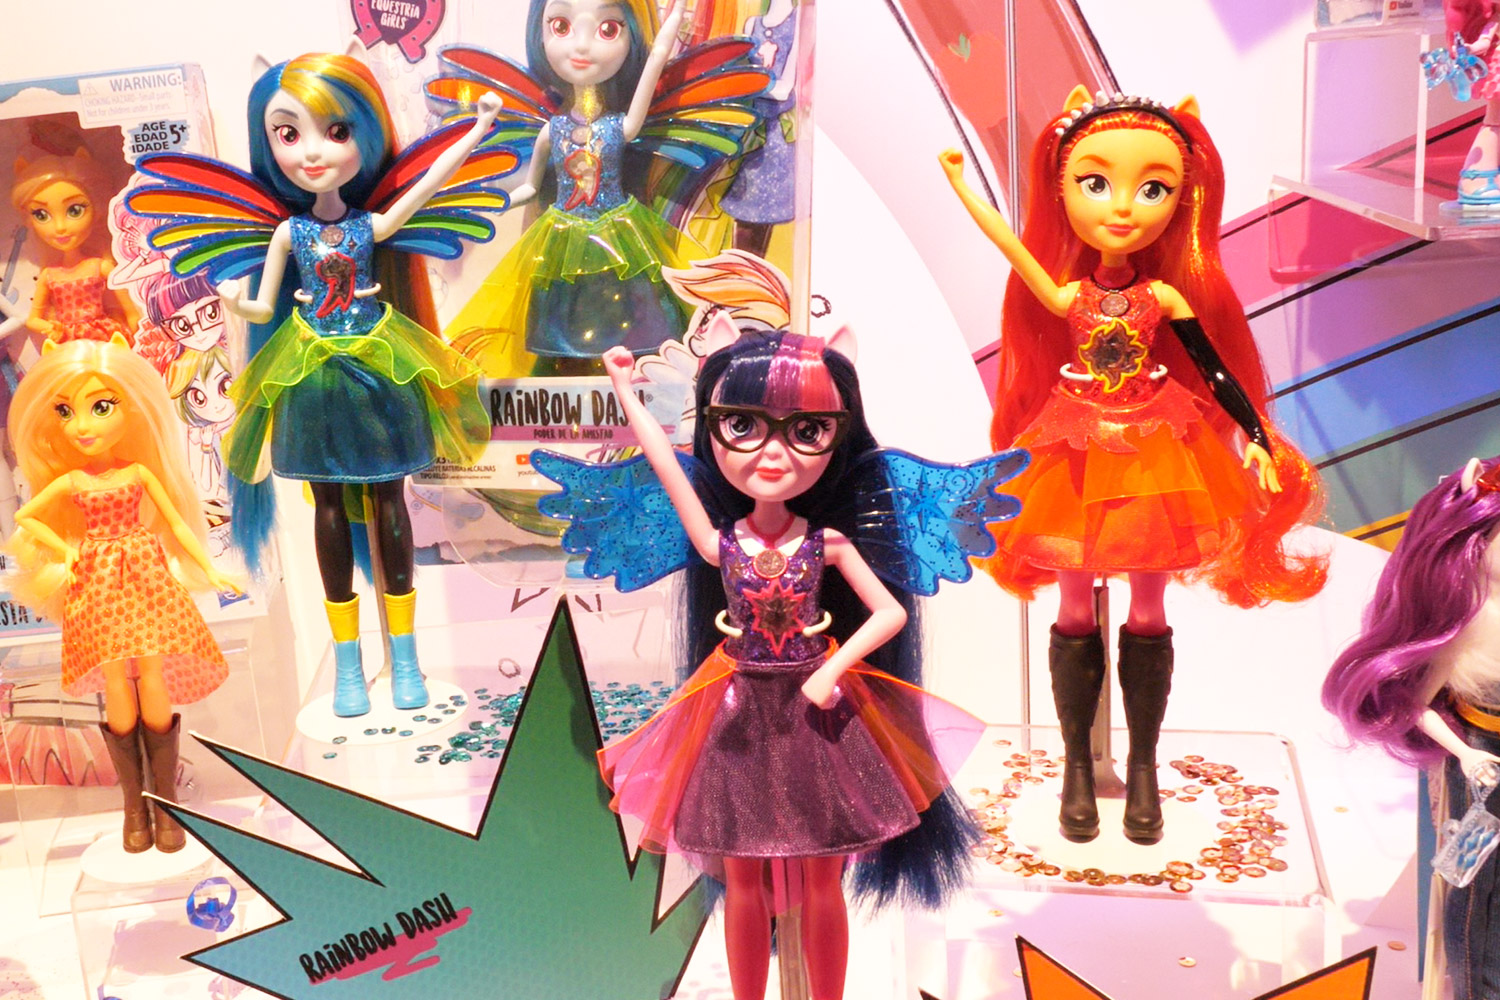 My Little Pony Equestria Girls Friendship Power Assortment